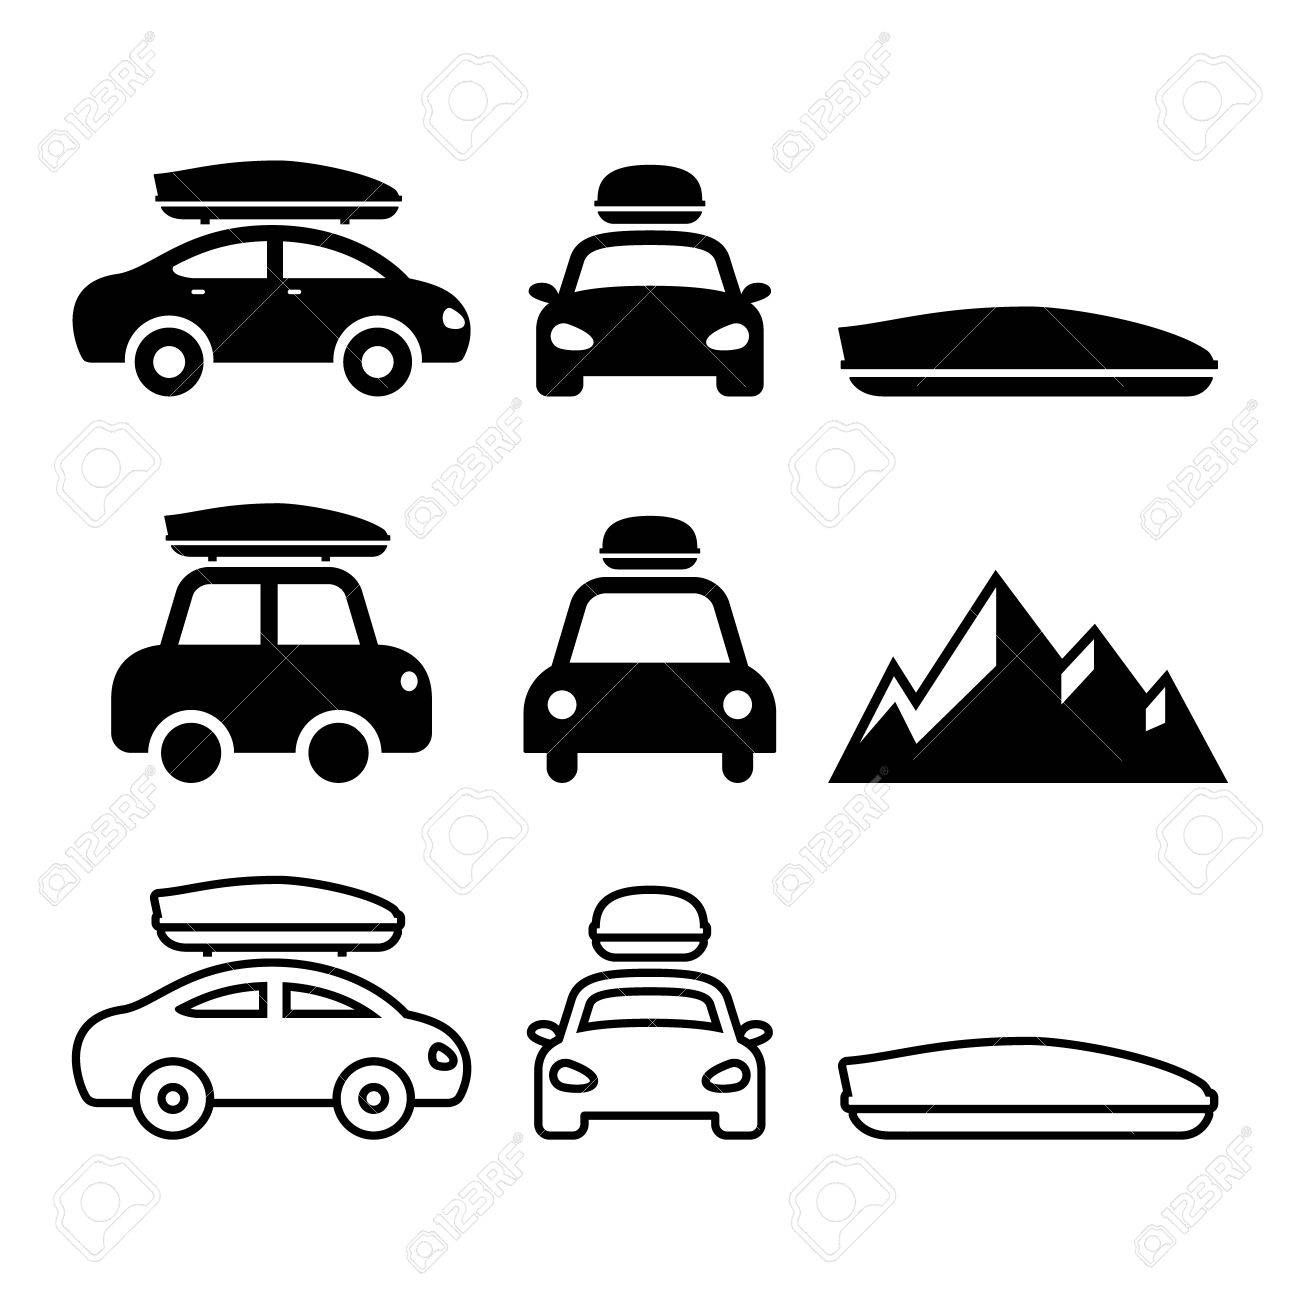 Car Roof Box Roof Rack Or Carrier Vector Icons Set Ad Box Rack Car Roof Icons Car Roof Box Roof Box Icon Set Vector